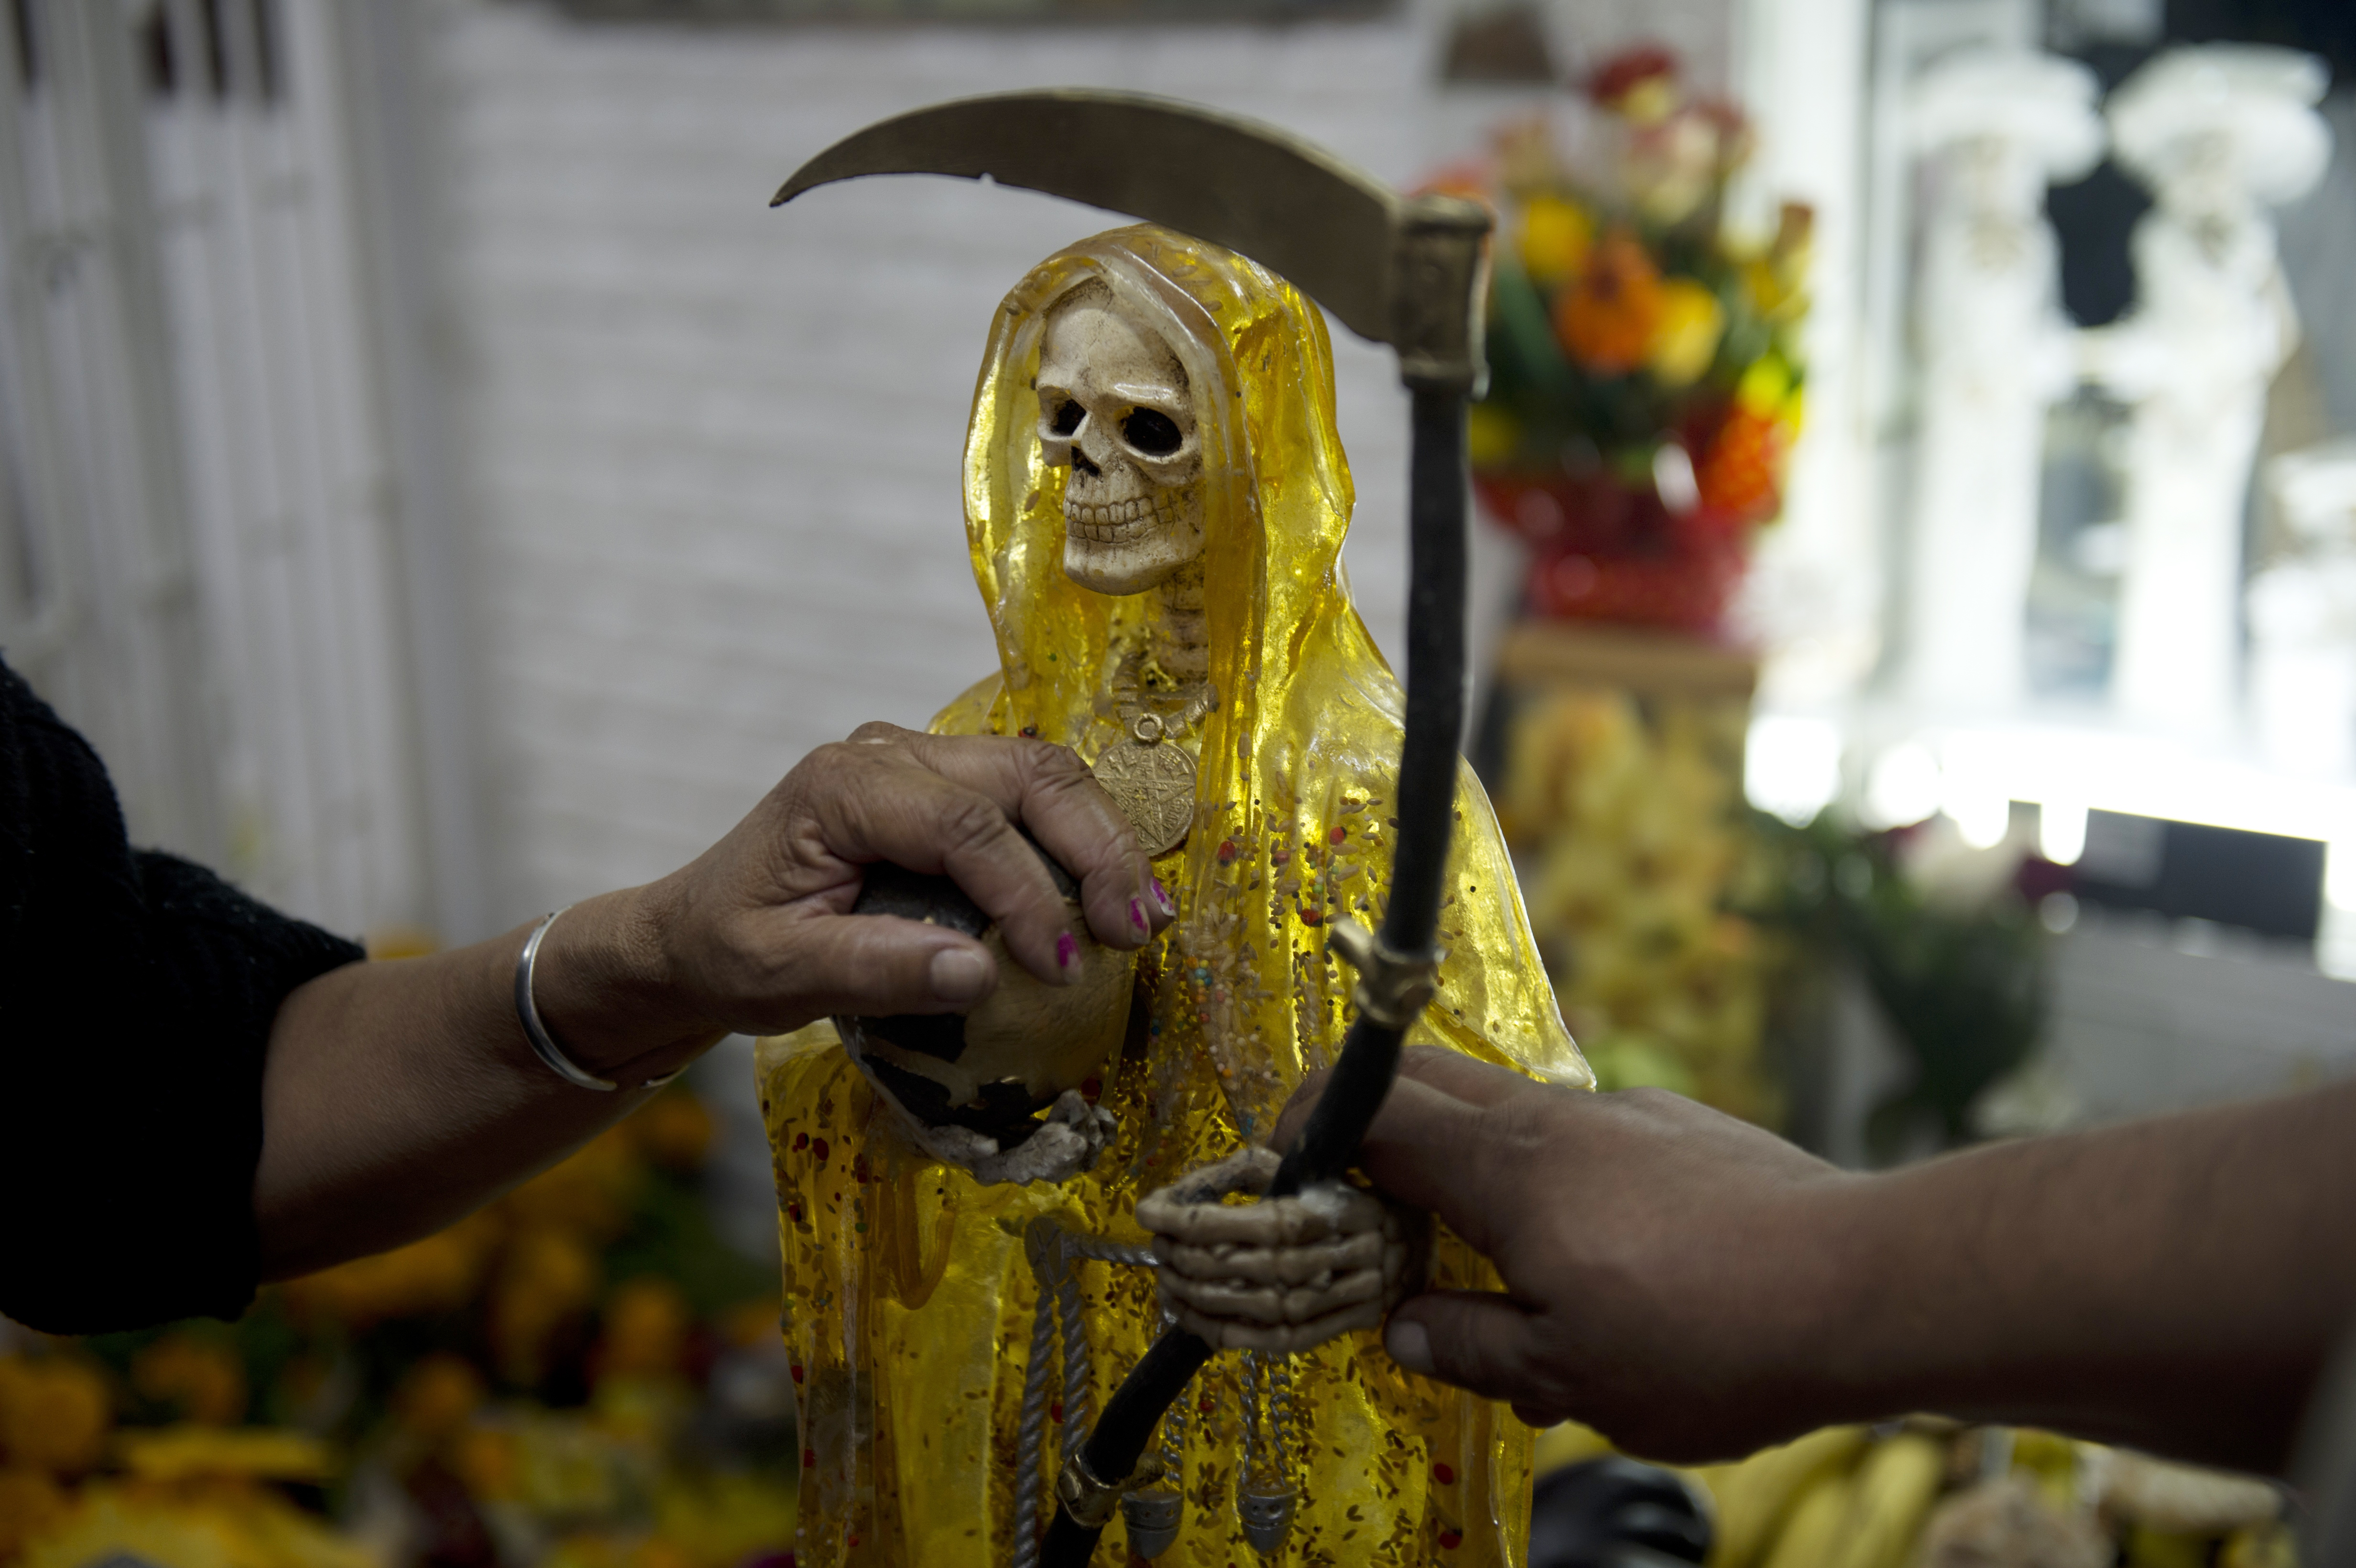 Devotees touch the figures of Santa Muerte (Saint of Death) before the central altar asking for favors during the main celebration in the market of one of the most dangerous neighborhoods, known as Tepito in Mexico City, on November 1, 2012. (YURI CORTEZ/AFP/Getty Images)